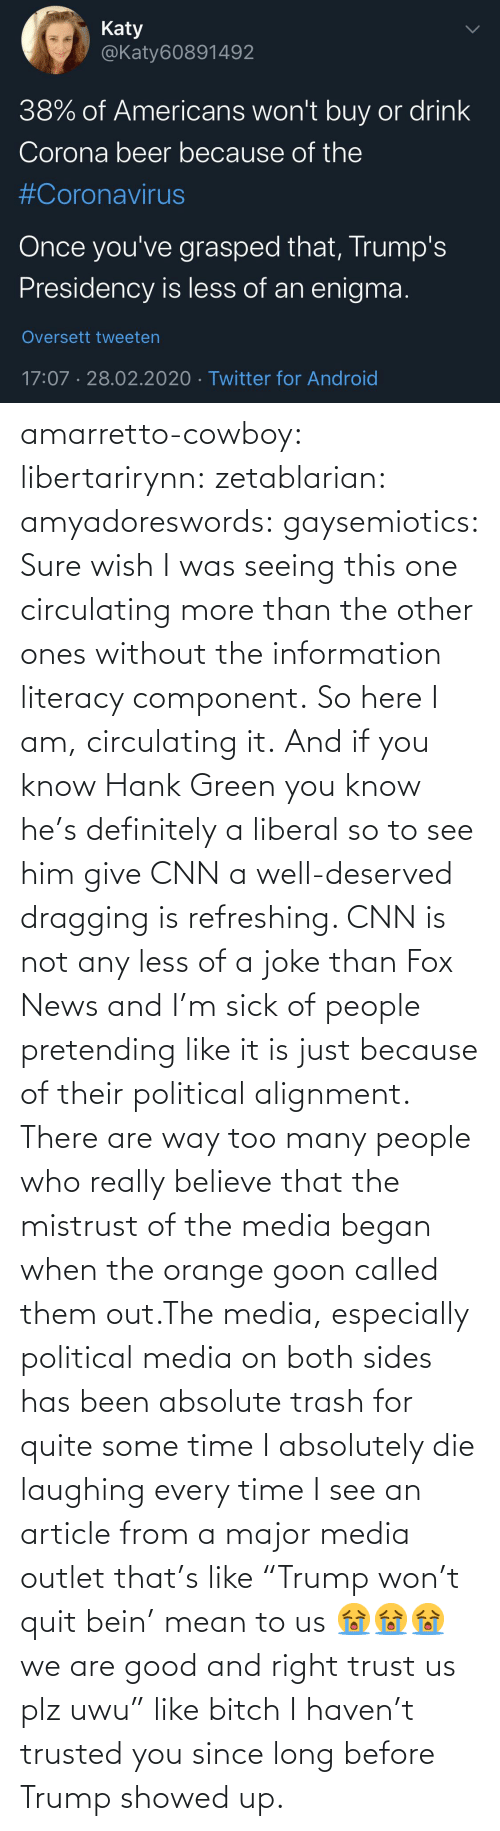 "Cowboy: amarretto-cowboy:  libertarirynn:  zetablarian:  amyadoreswords:   gaysemiotics:       Sure wish I was seeing this one circulating more than the other ones without the information literacy component. So here I am, circulating it.    And if you know Hank Green you know he's definitely a liberal so to see him give CNN a well-deserved dragging is refreshing. CNN is not any less of a joke than Fox News and I'm sick of people pretending like it is just because of their political alignment.   There are way too many people who really believe that the mistrust of the media began when the orange goon called them out.The media, especially political media on both sides has been absolute trash for quite some time   I absolutely die laughing every time I see an article from a major media outlet that's like ""Trump won't quit bein' mean to us 😭😭😭 we are good and right trust us plz uwu"" like bitch I haven't trusted you since long before Trump showed up."